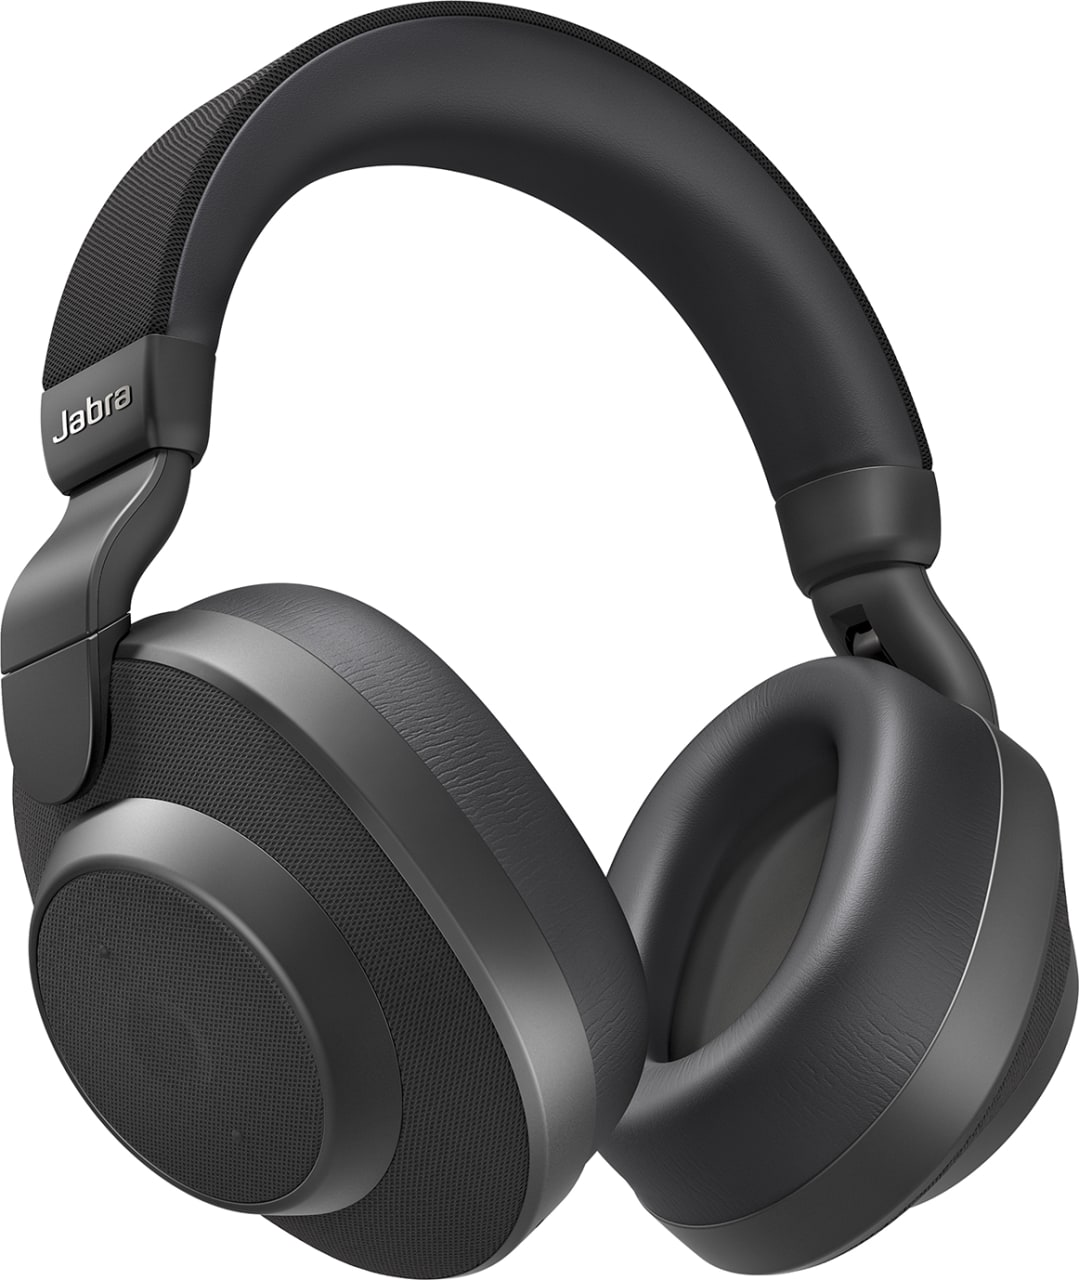 Black Jabra Elite 85h Over-ear Bluetooth Headphones.1